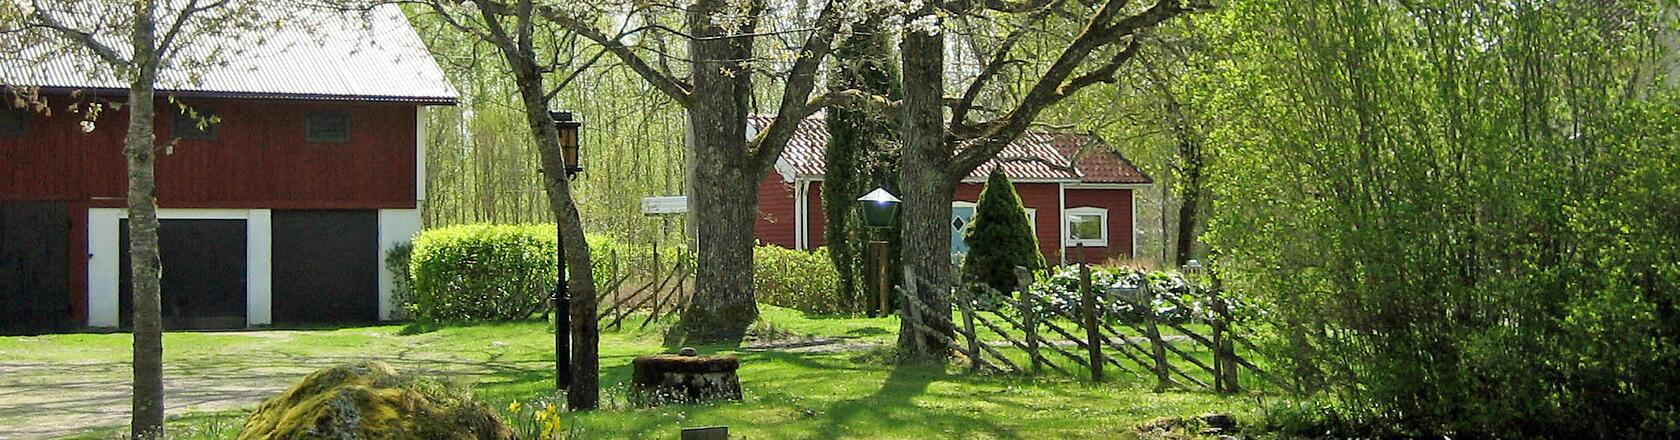 Sala in Sweden - Rent a holiday home  with DanCenter